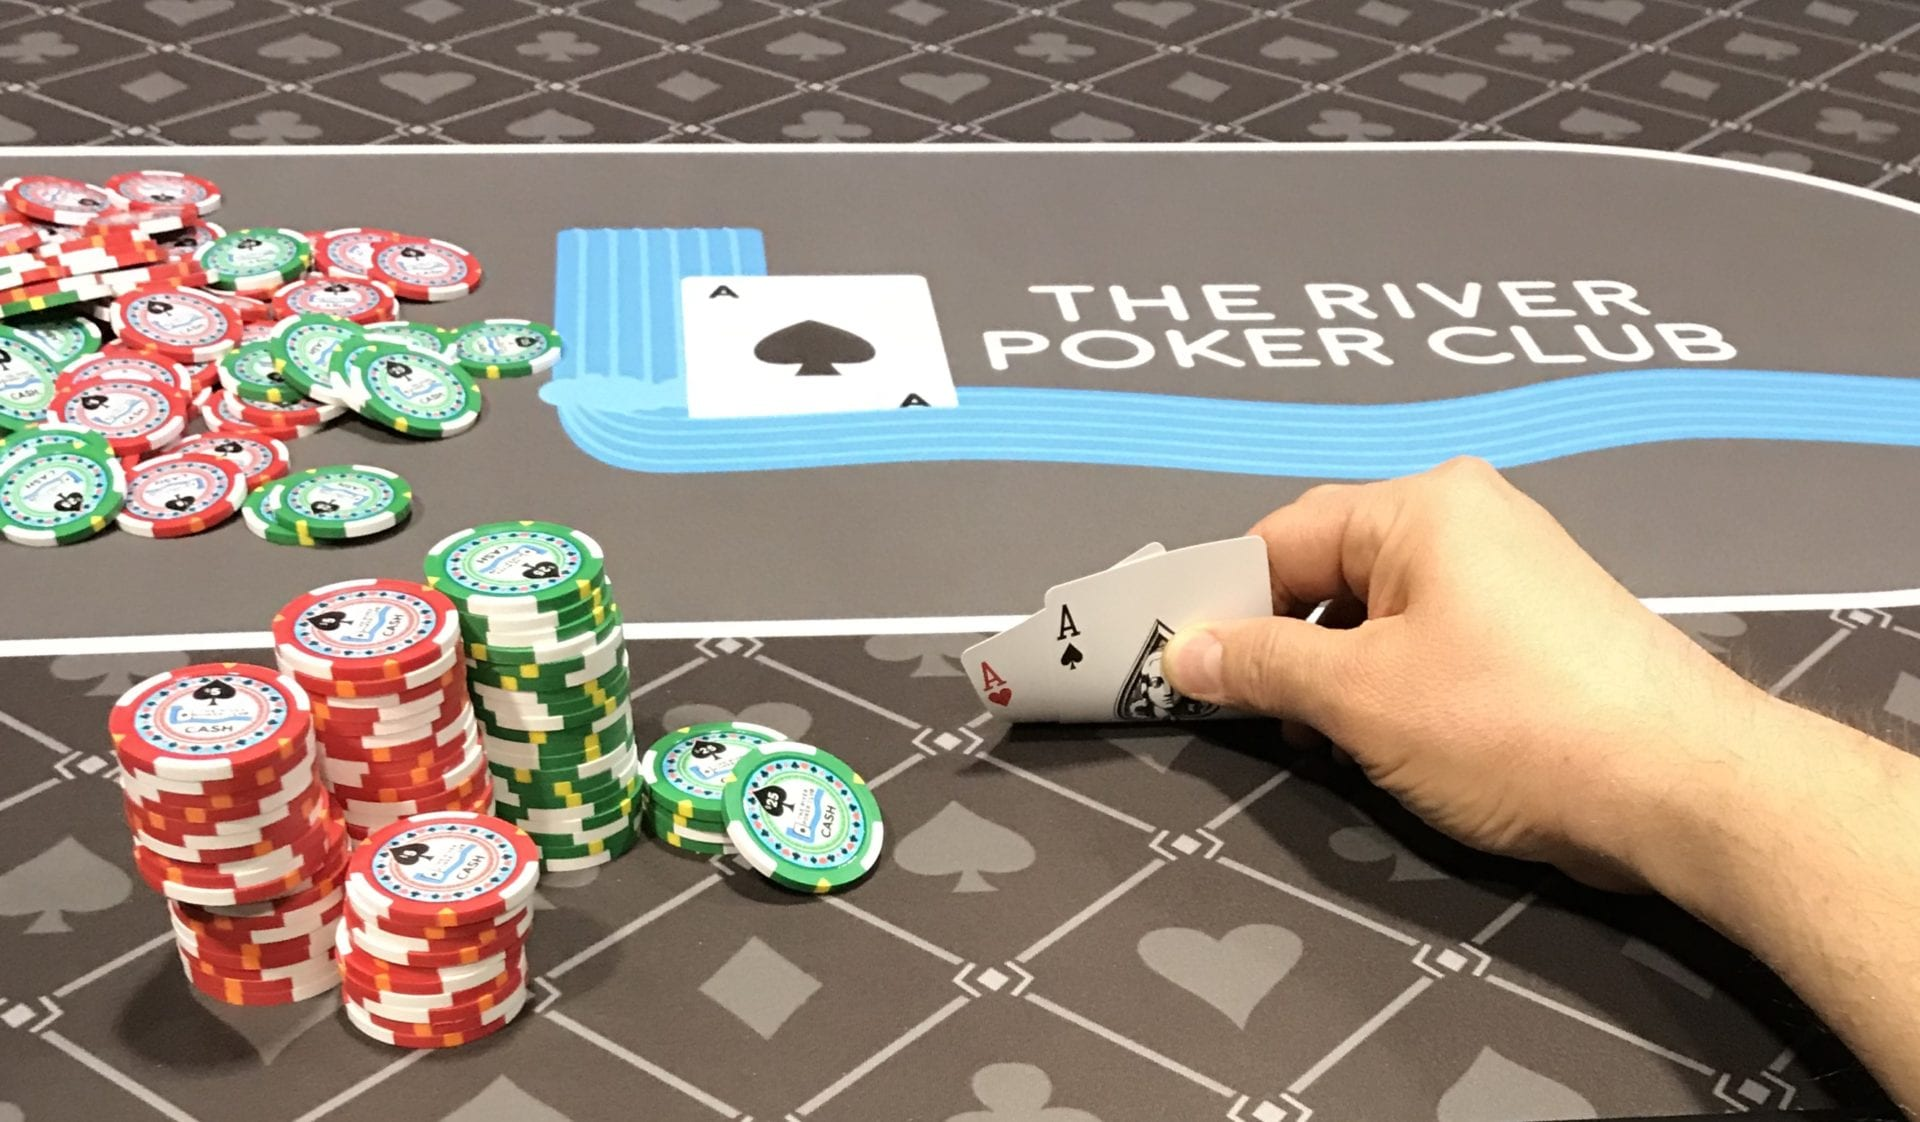 THE RIVER POKER CLUB